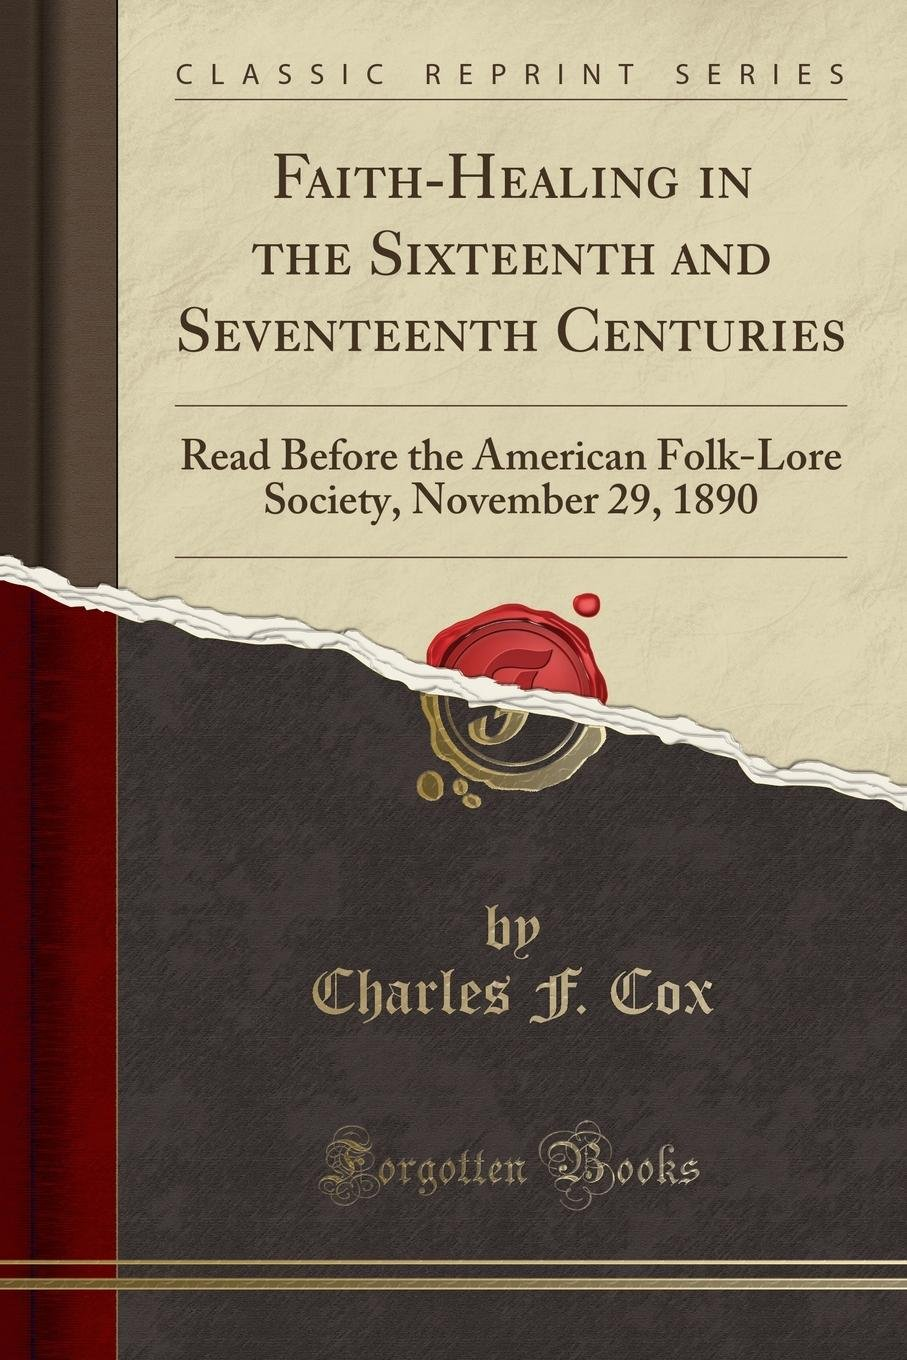 Download Faith-Healing in the Sixteenth and Seventeenth Centuries: Read Before the American Folk-Lore Society, November 29, 1890 (Classic Reprint) PDF